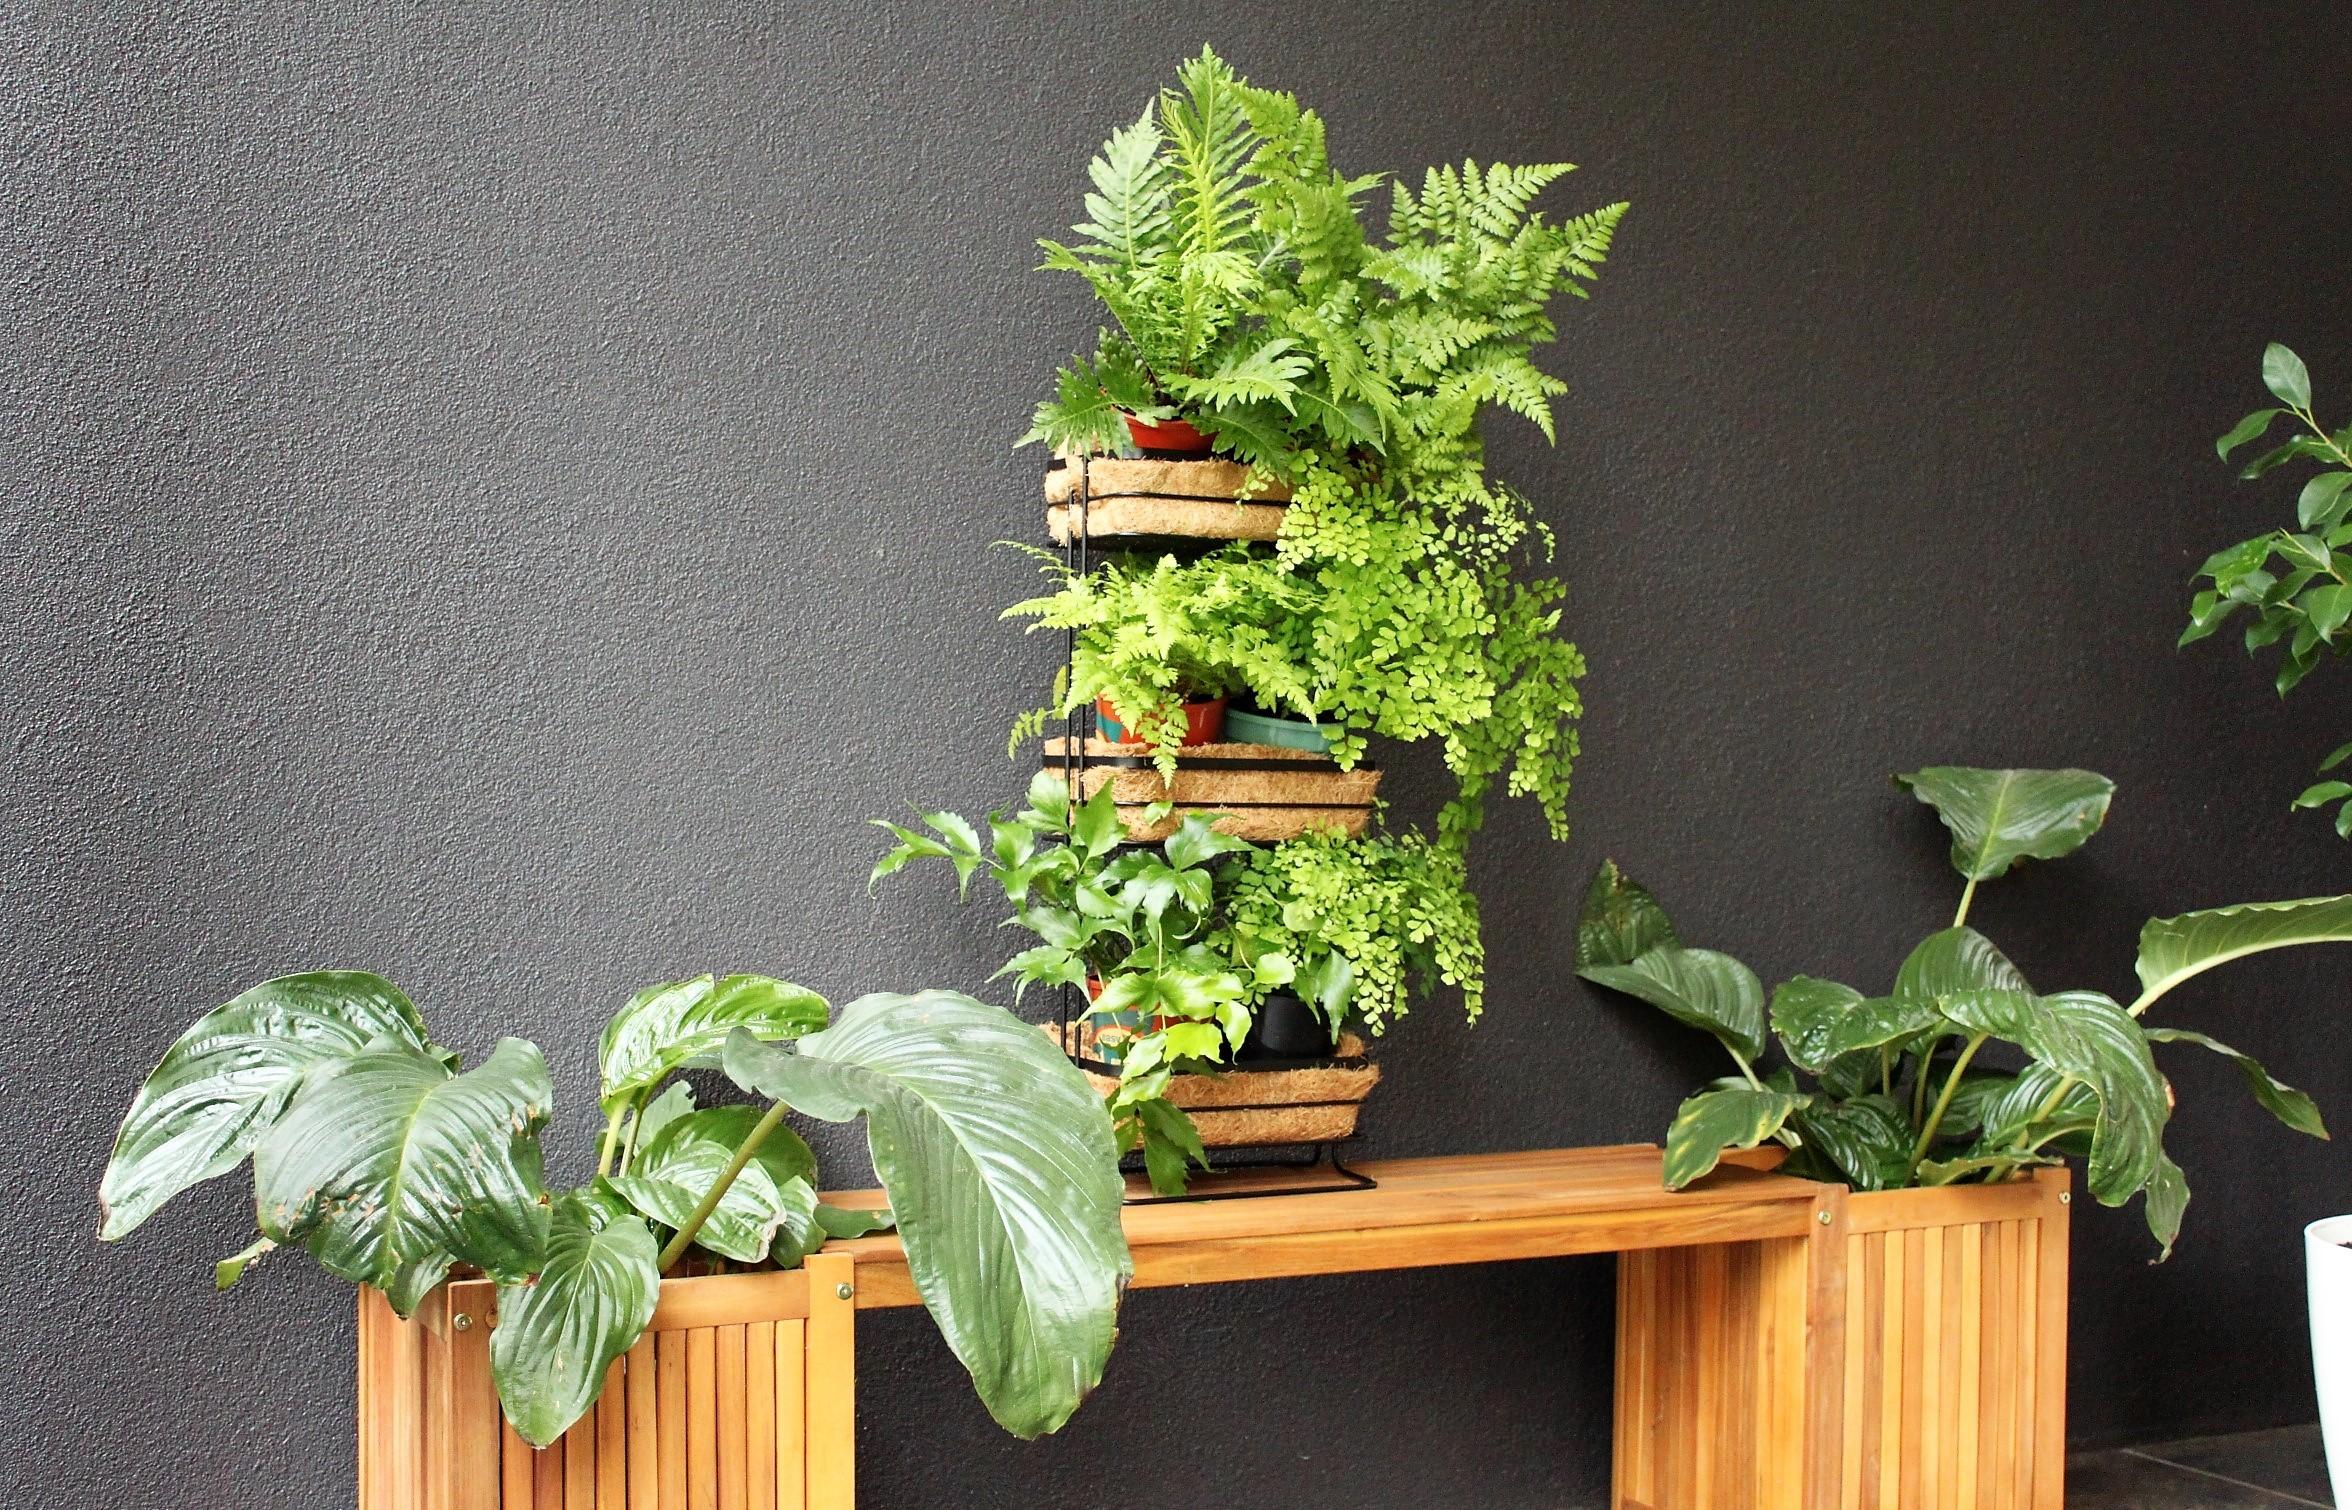 Mini vertical garden kmart styling - Vertical gardens miniature oases ...